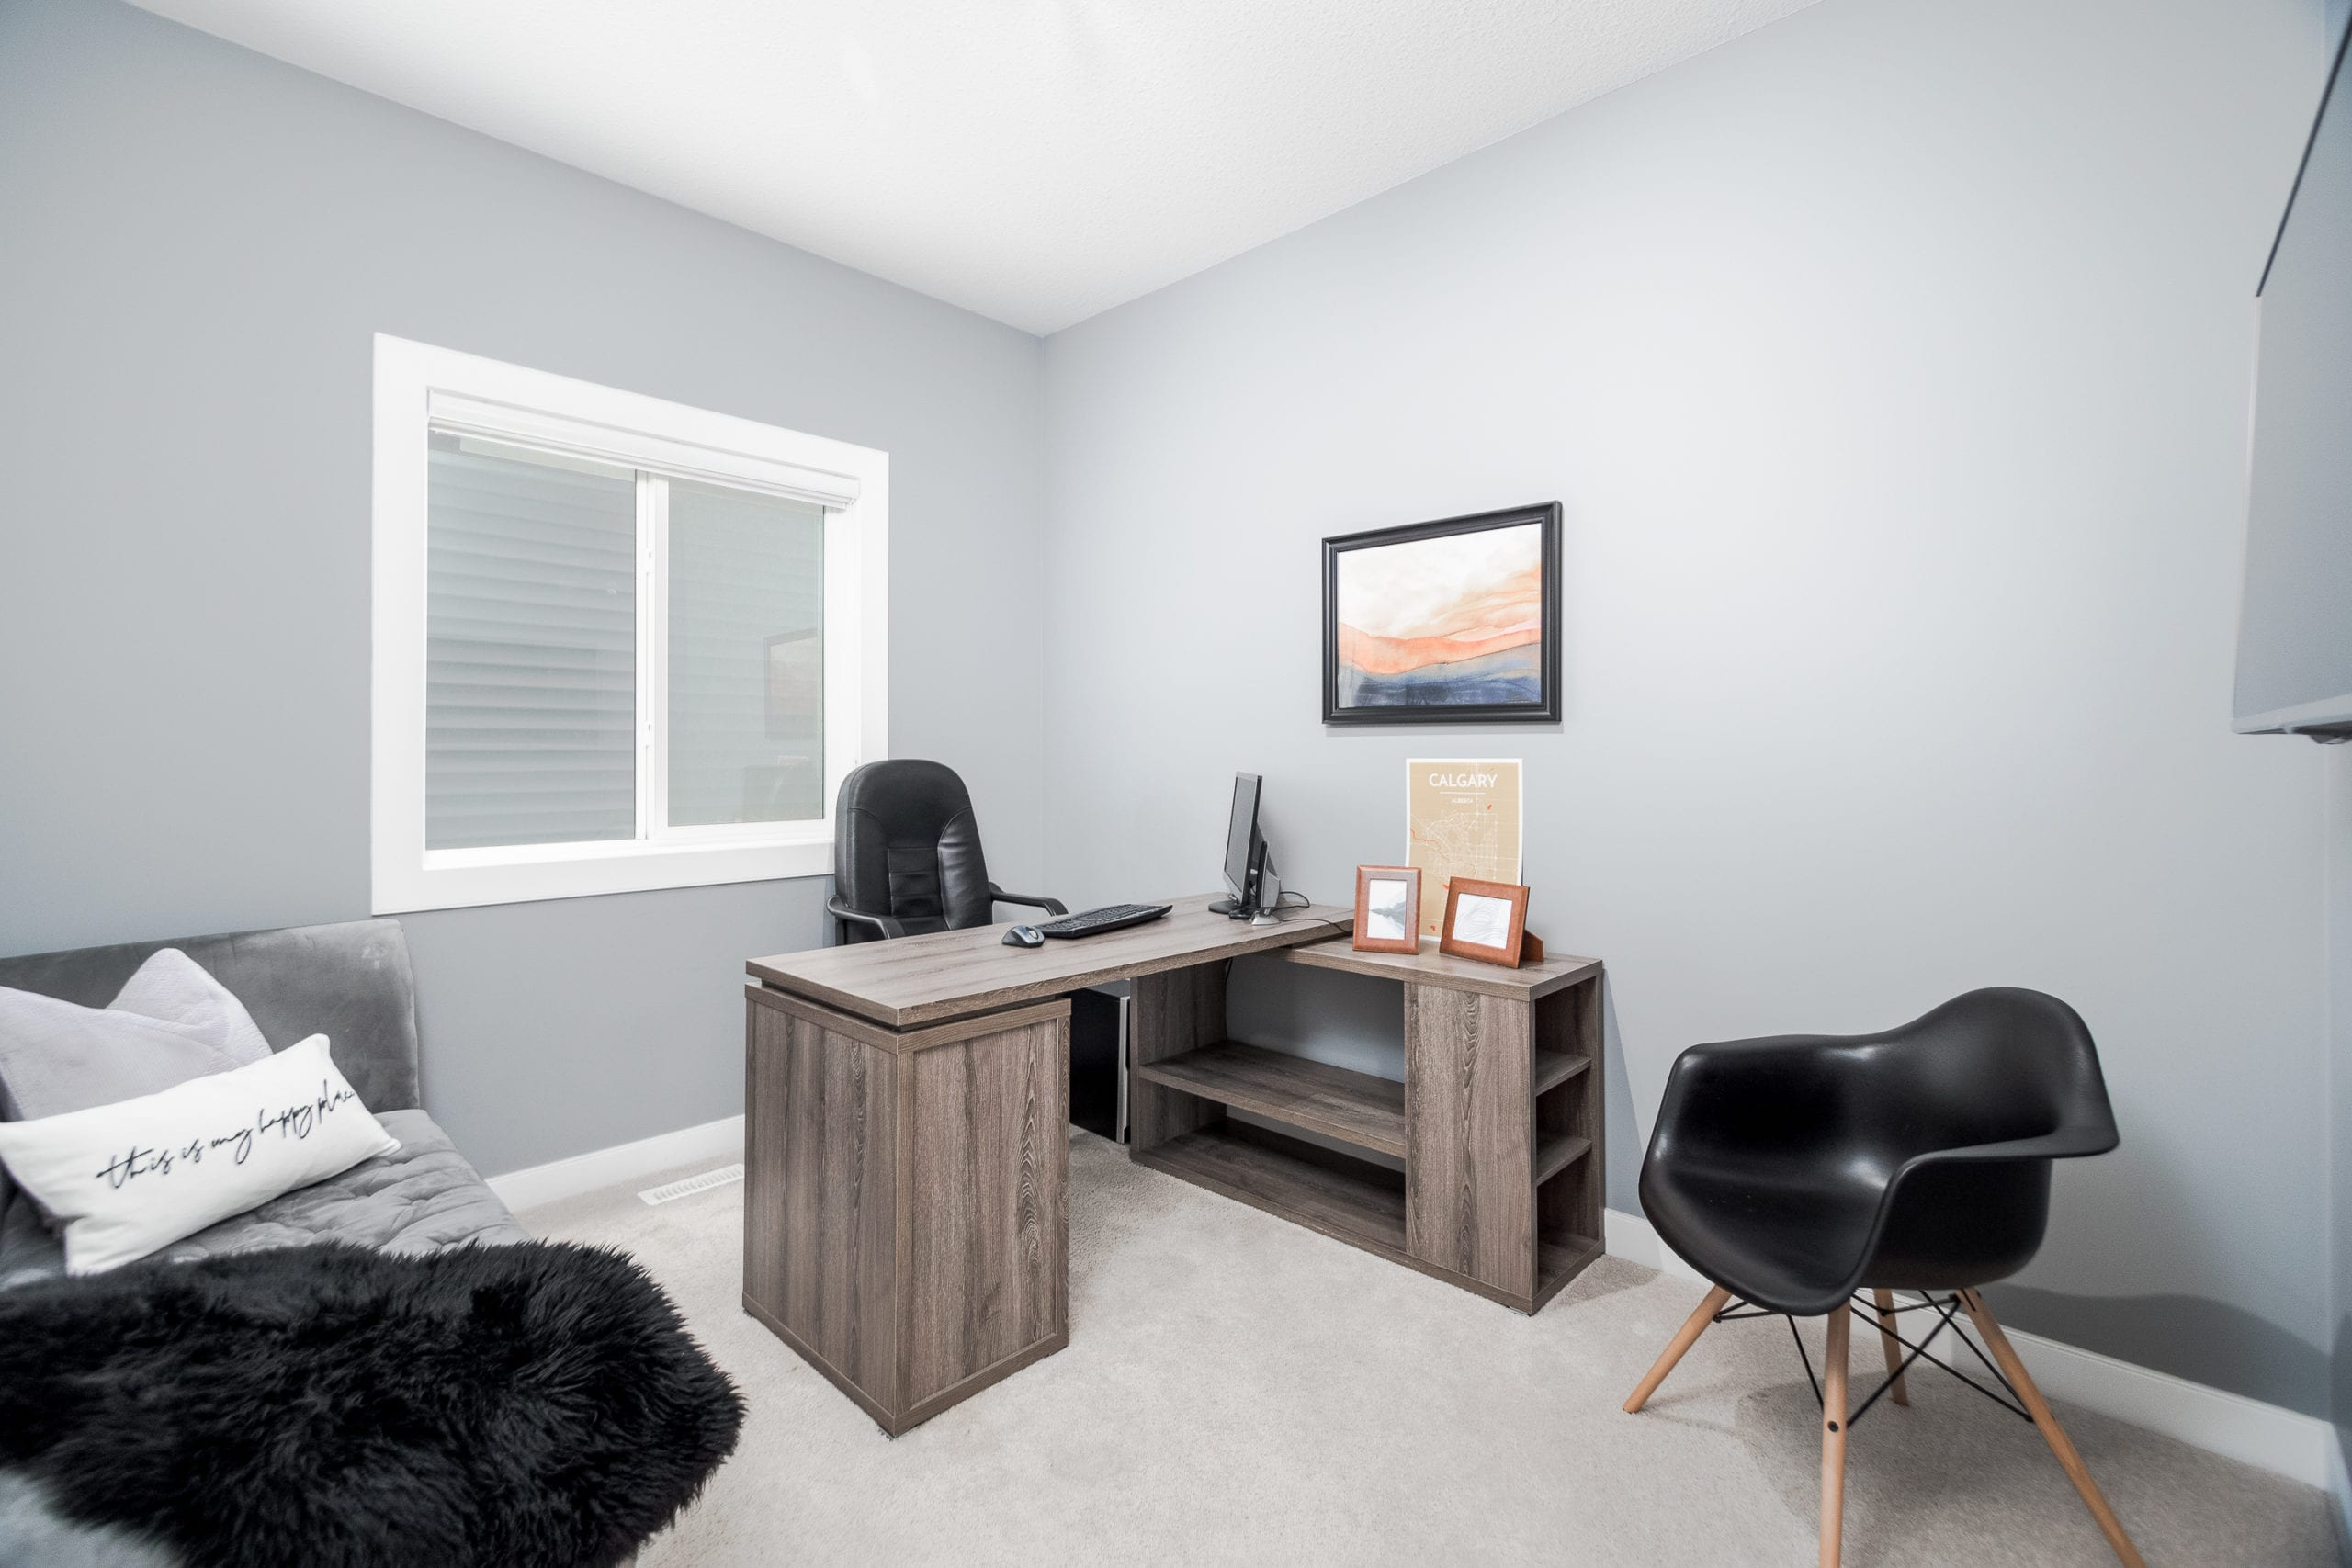 Hello Gorgeous - 1306 Kings Heights Way SE, Airdrie AB. - Tara Molina Real Estate (26 of 53)